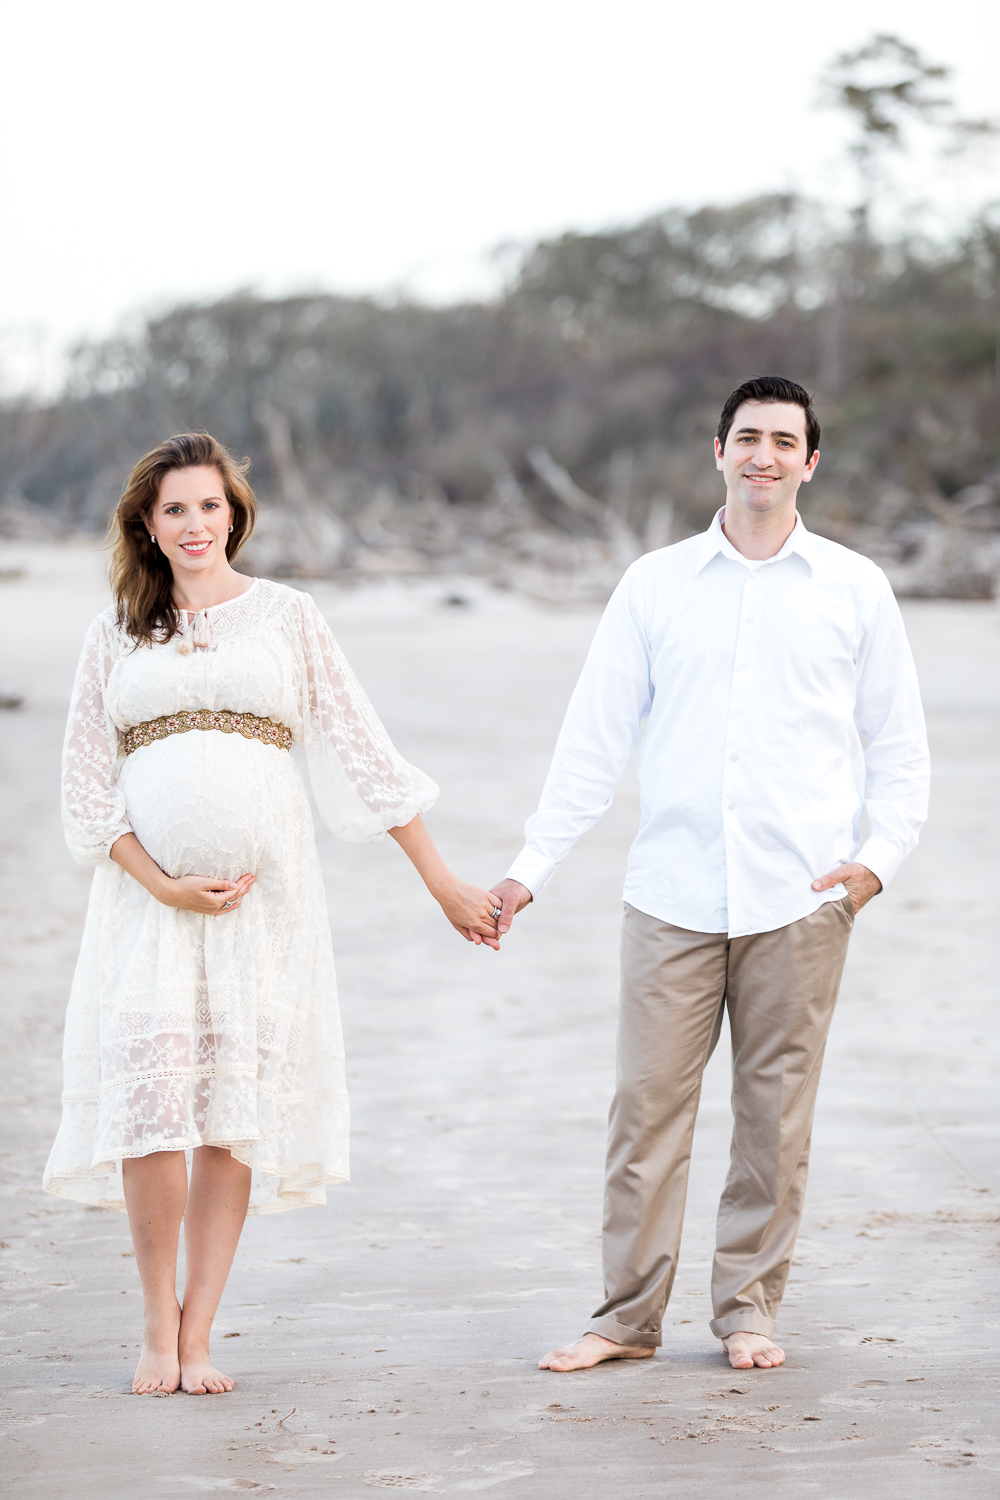 Suset maternity pictures at the beach